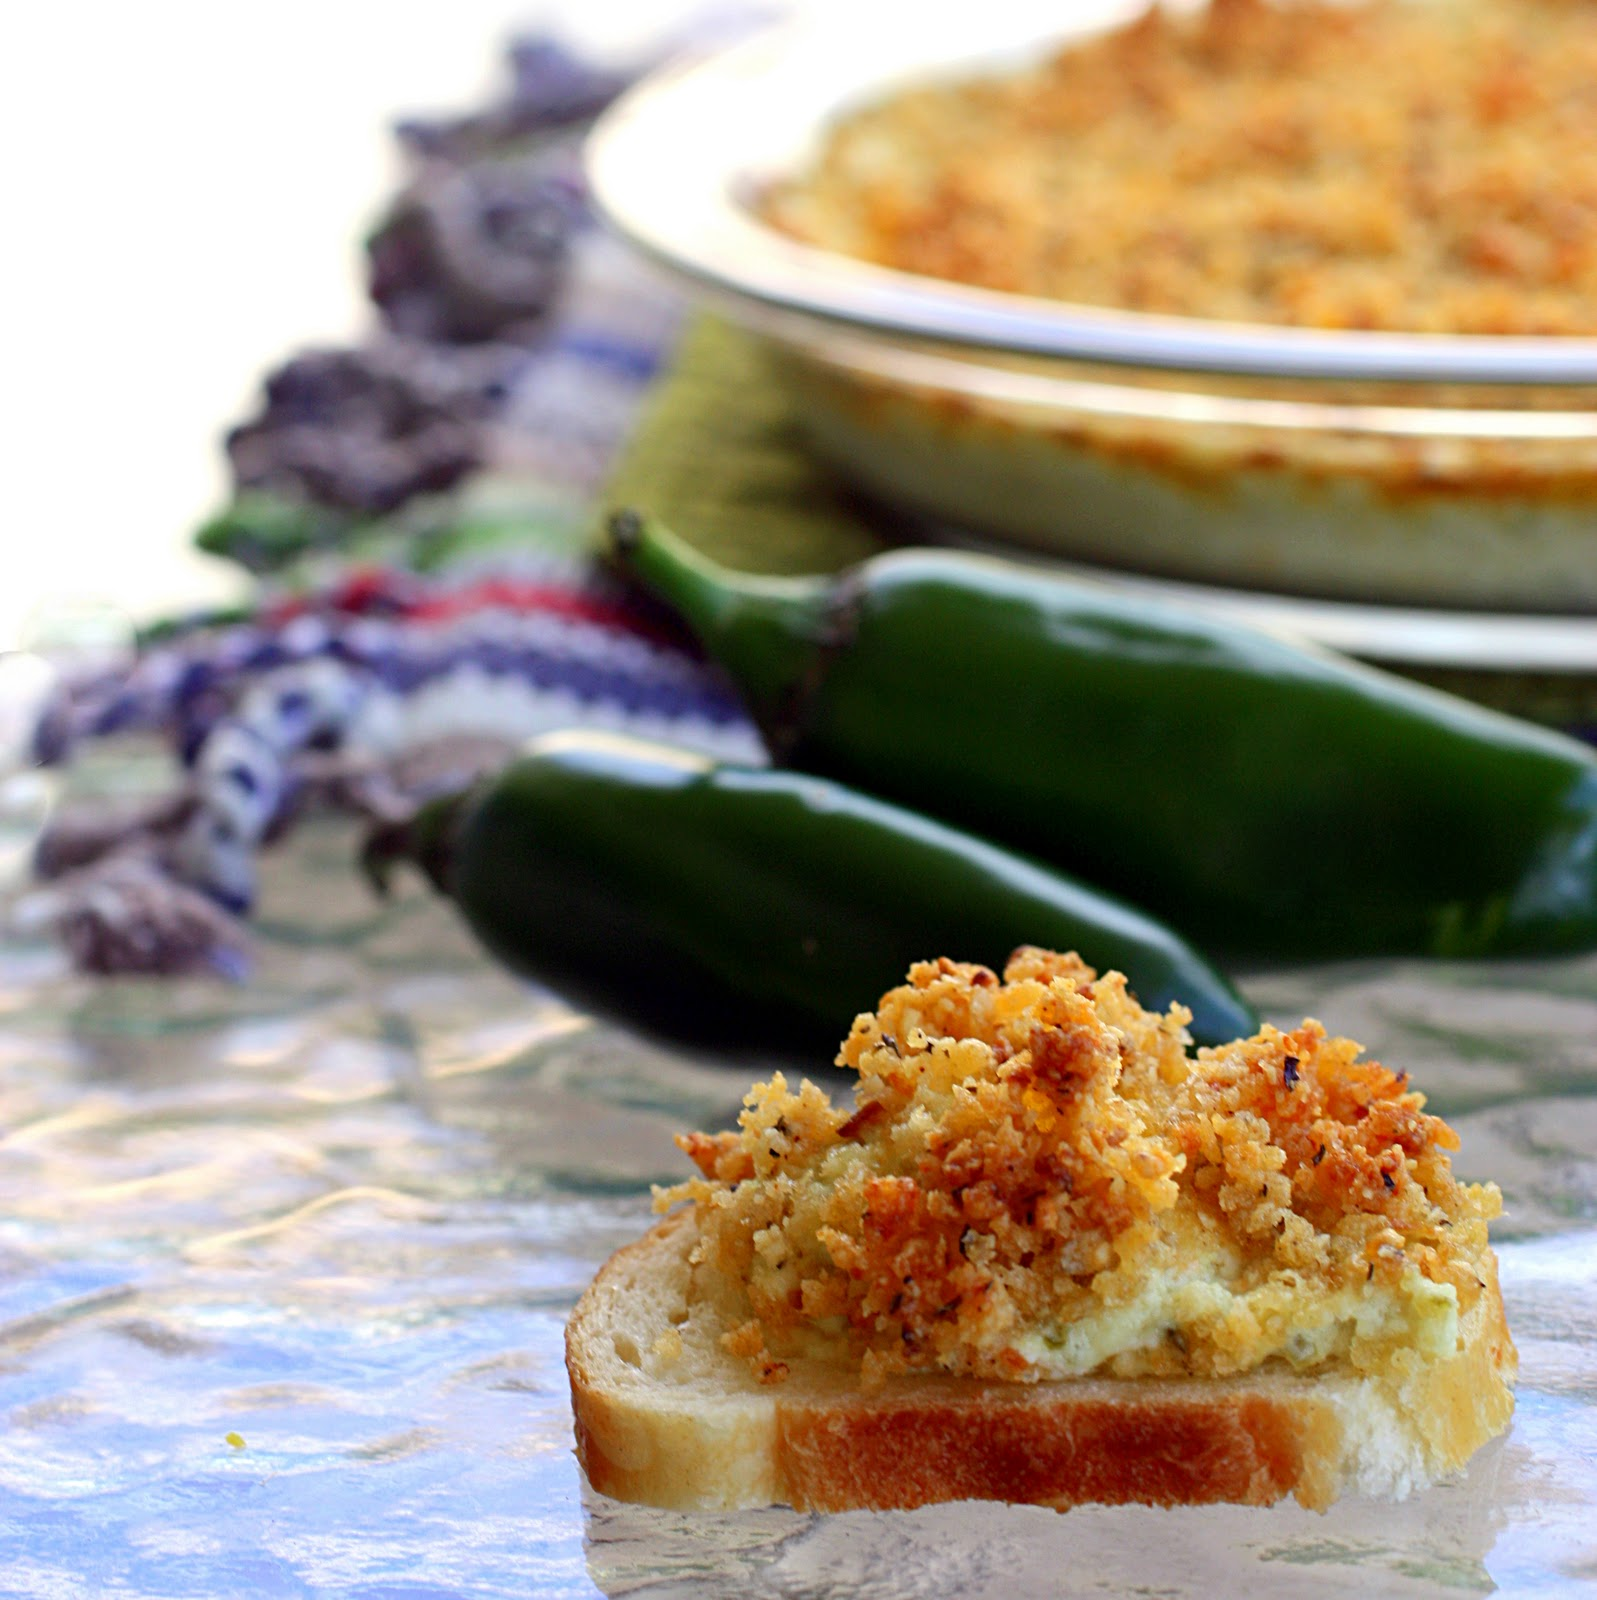 Jalapeno Popper Dip - The Girl Who Ate Everything